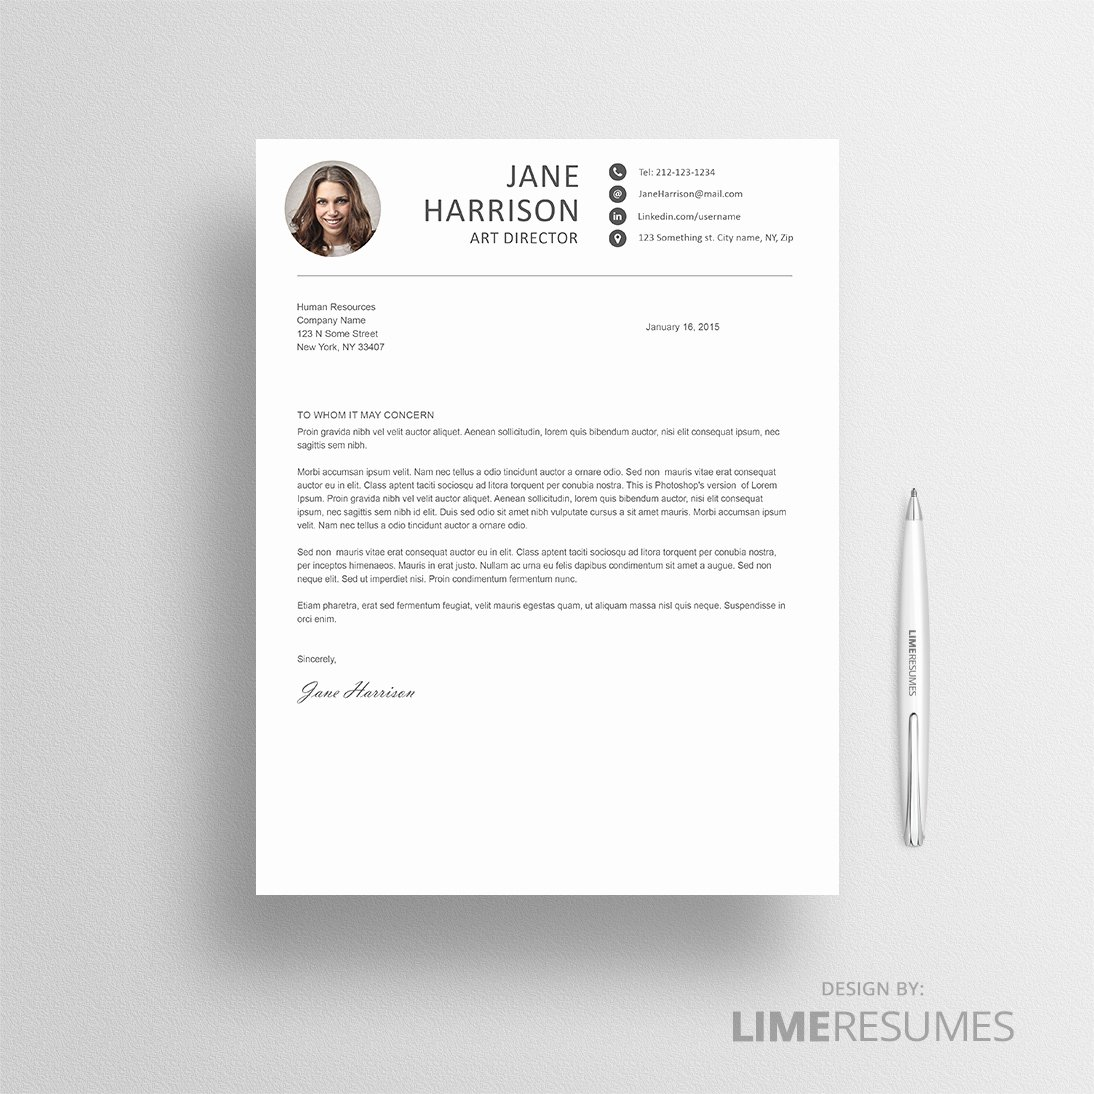 Creative Cover Letter Template New Creative Resume Template for Creatives Limeresumes